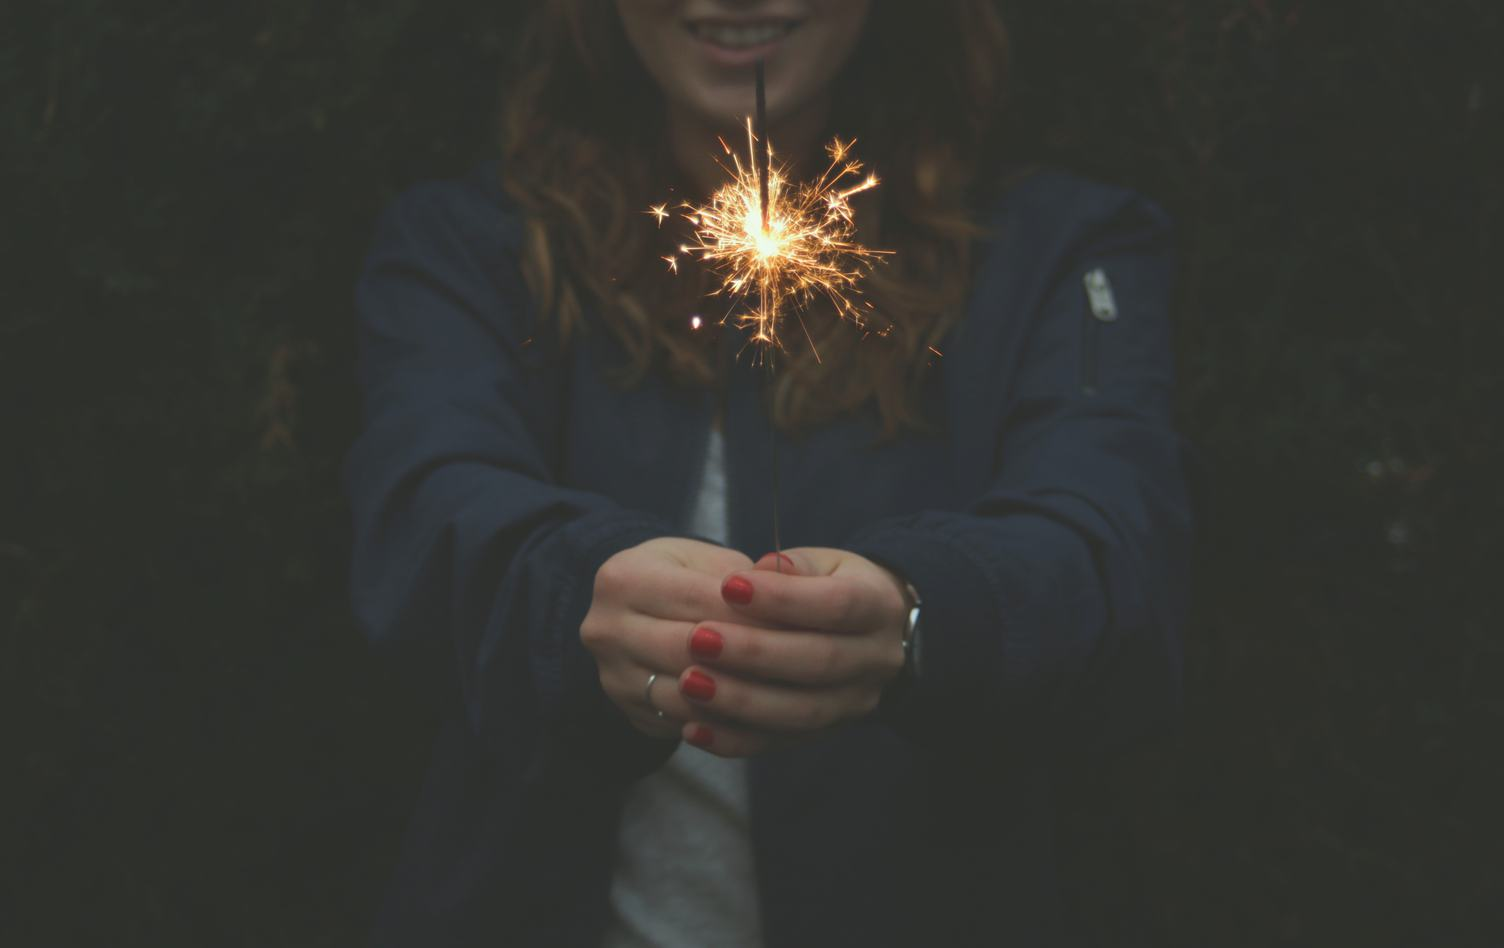 Woman with Red Nails Playing with Sparklers